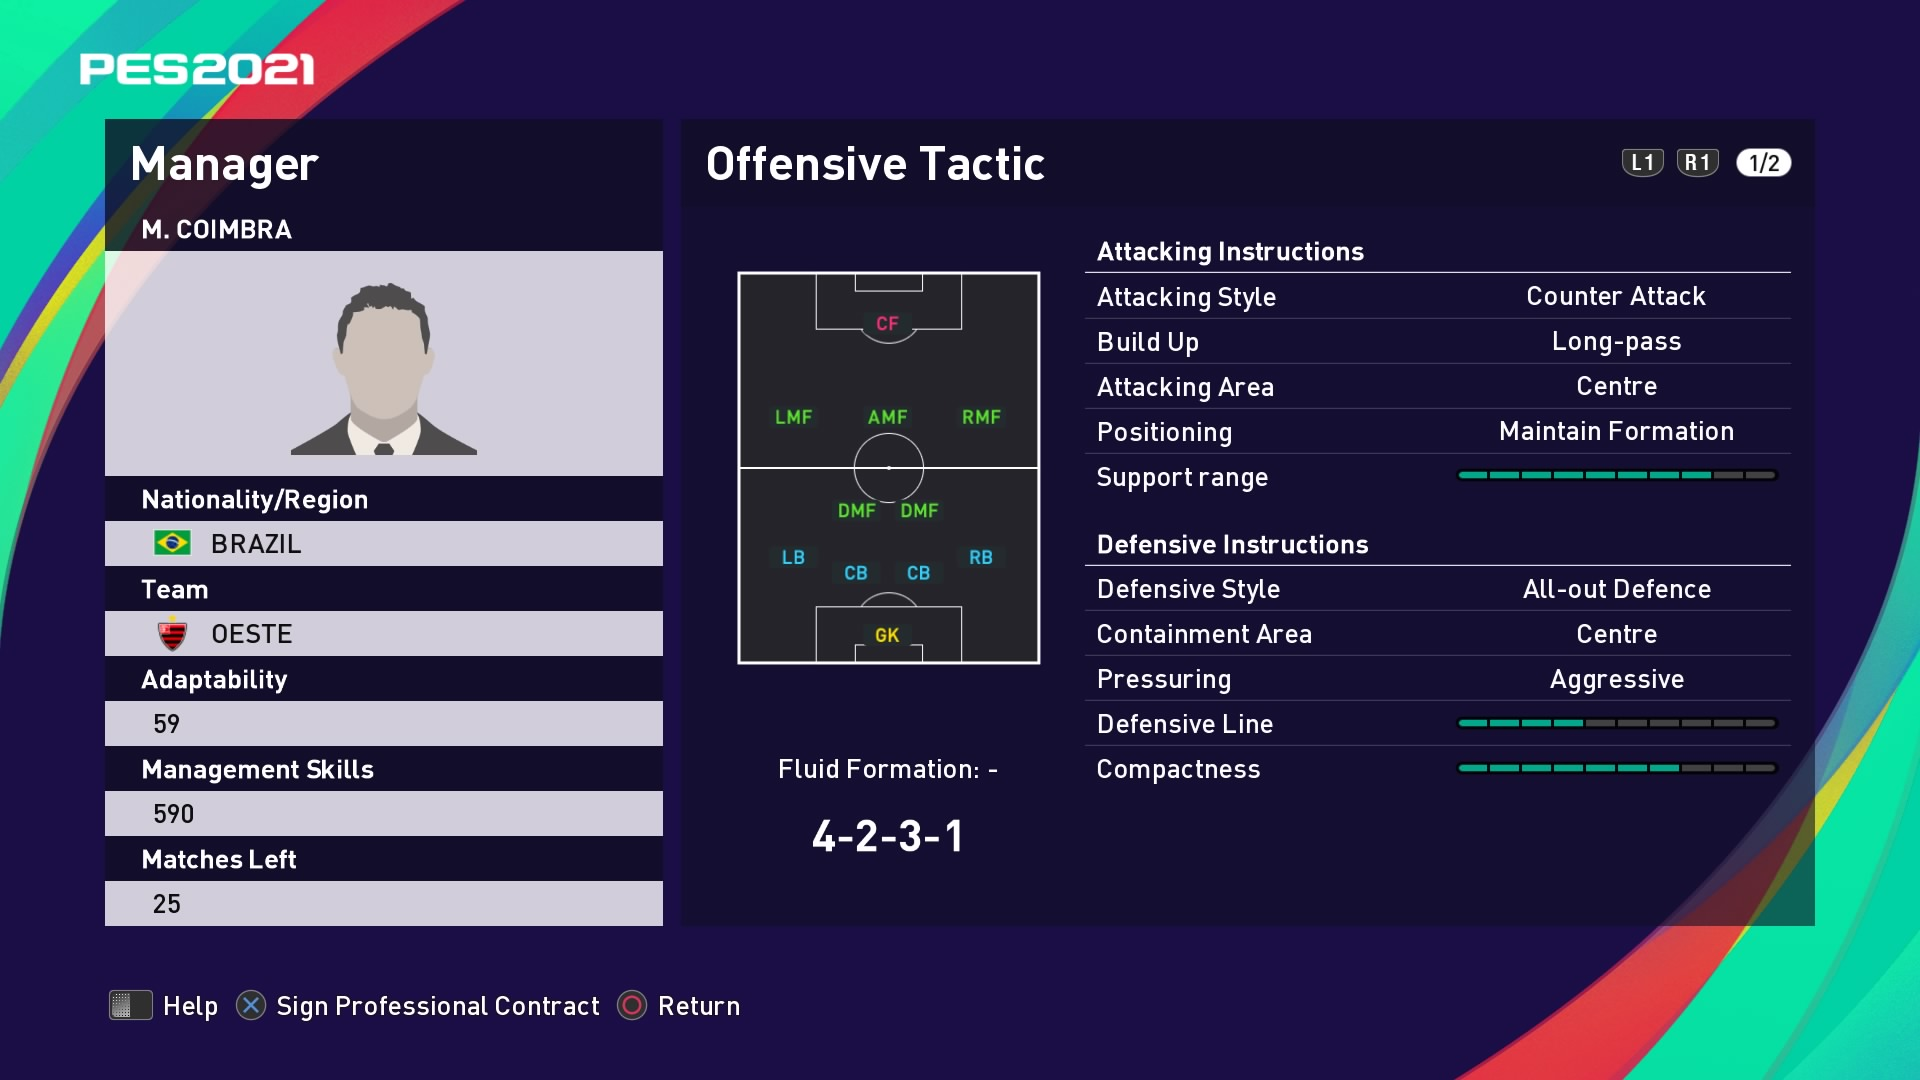 M. Coimbra (Roberto Cavalo) Offensive Tactic in PES 2021 myClub